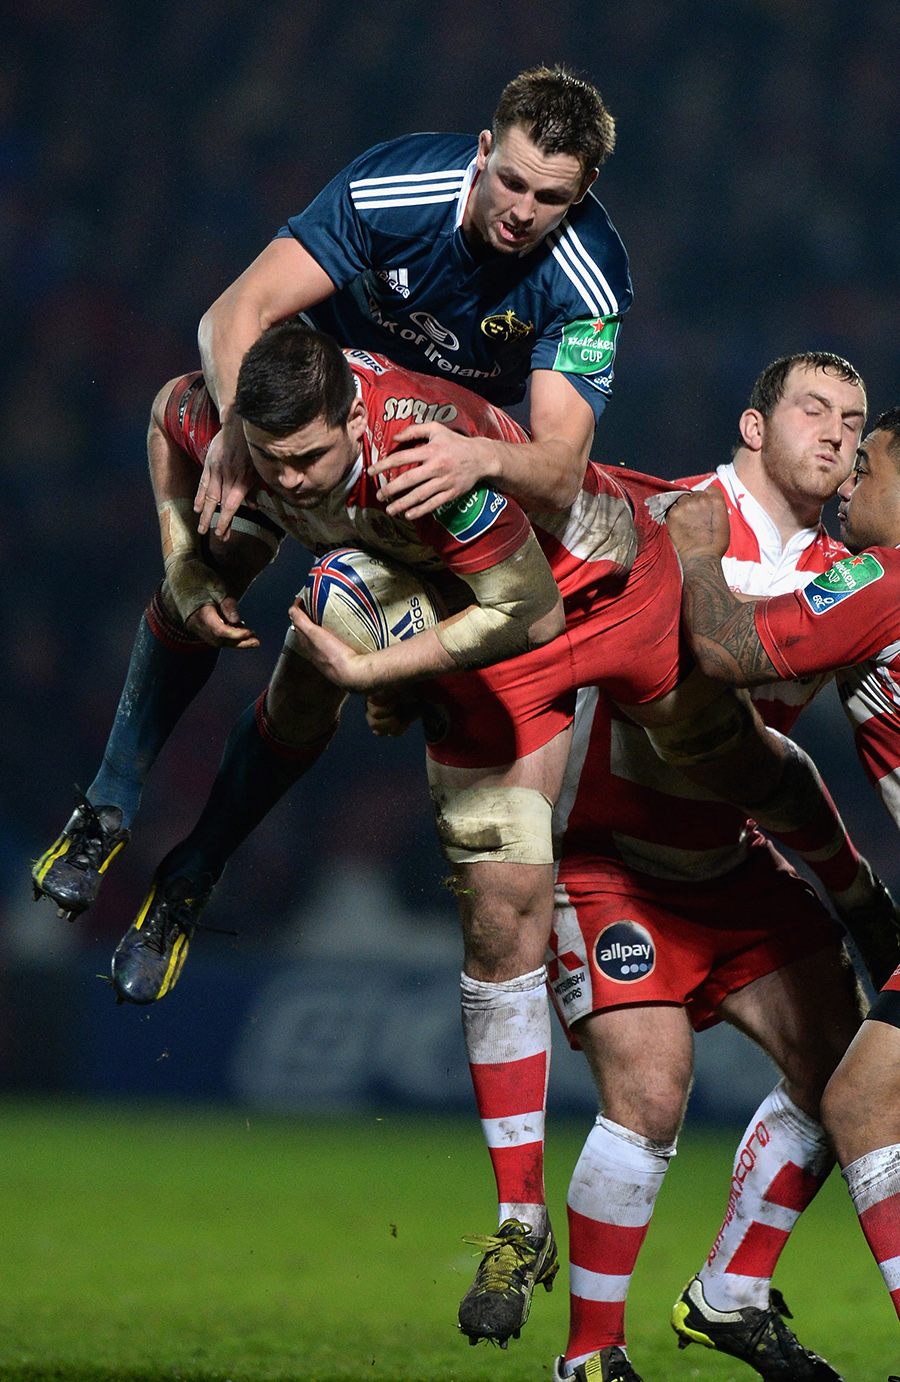 Munster's Dave Foley and Elliott Stooke of Gloucester tussle in the air